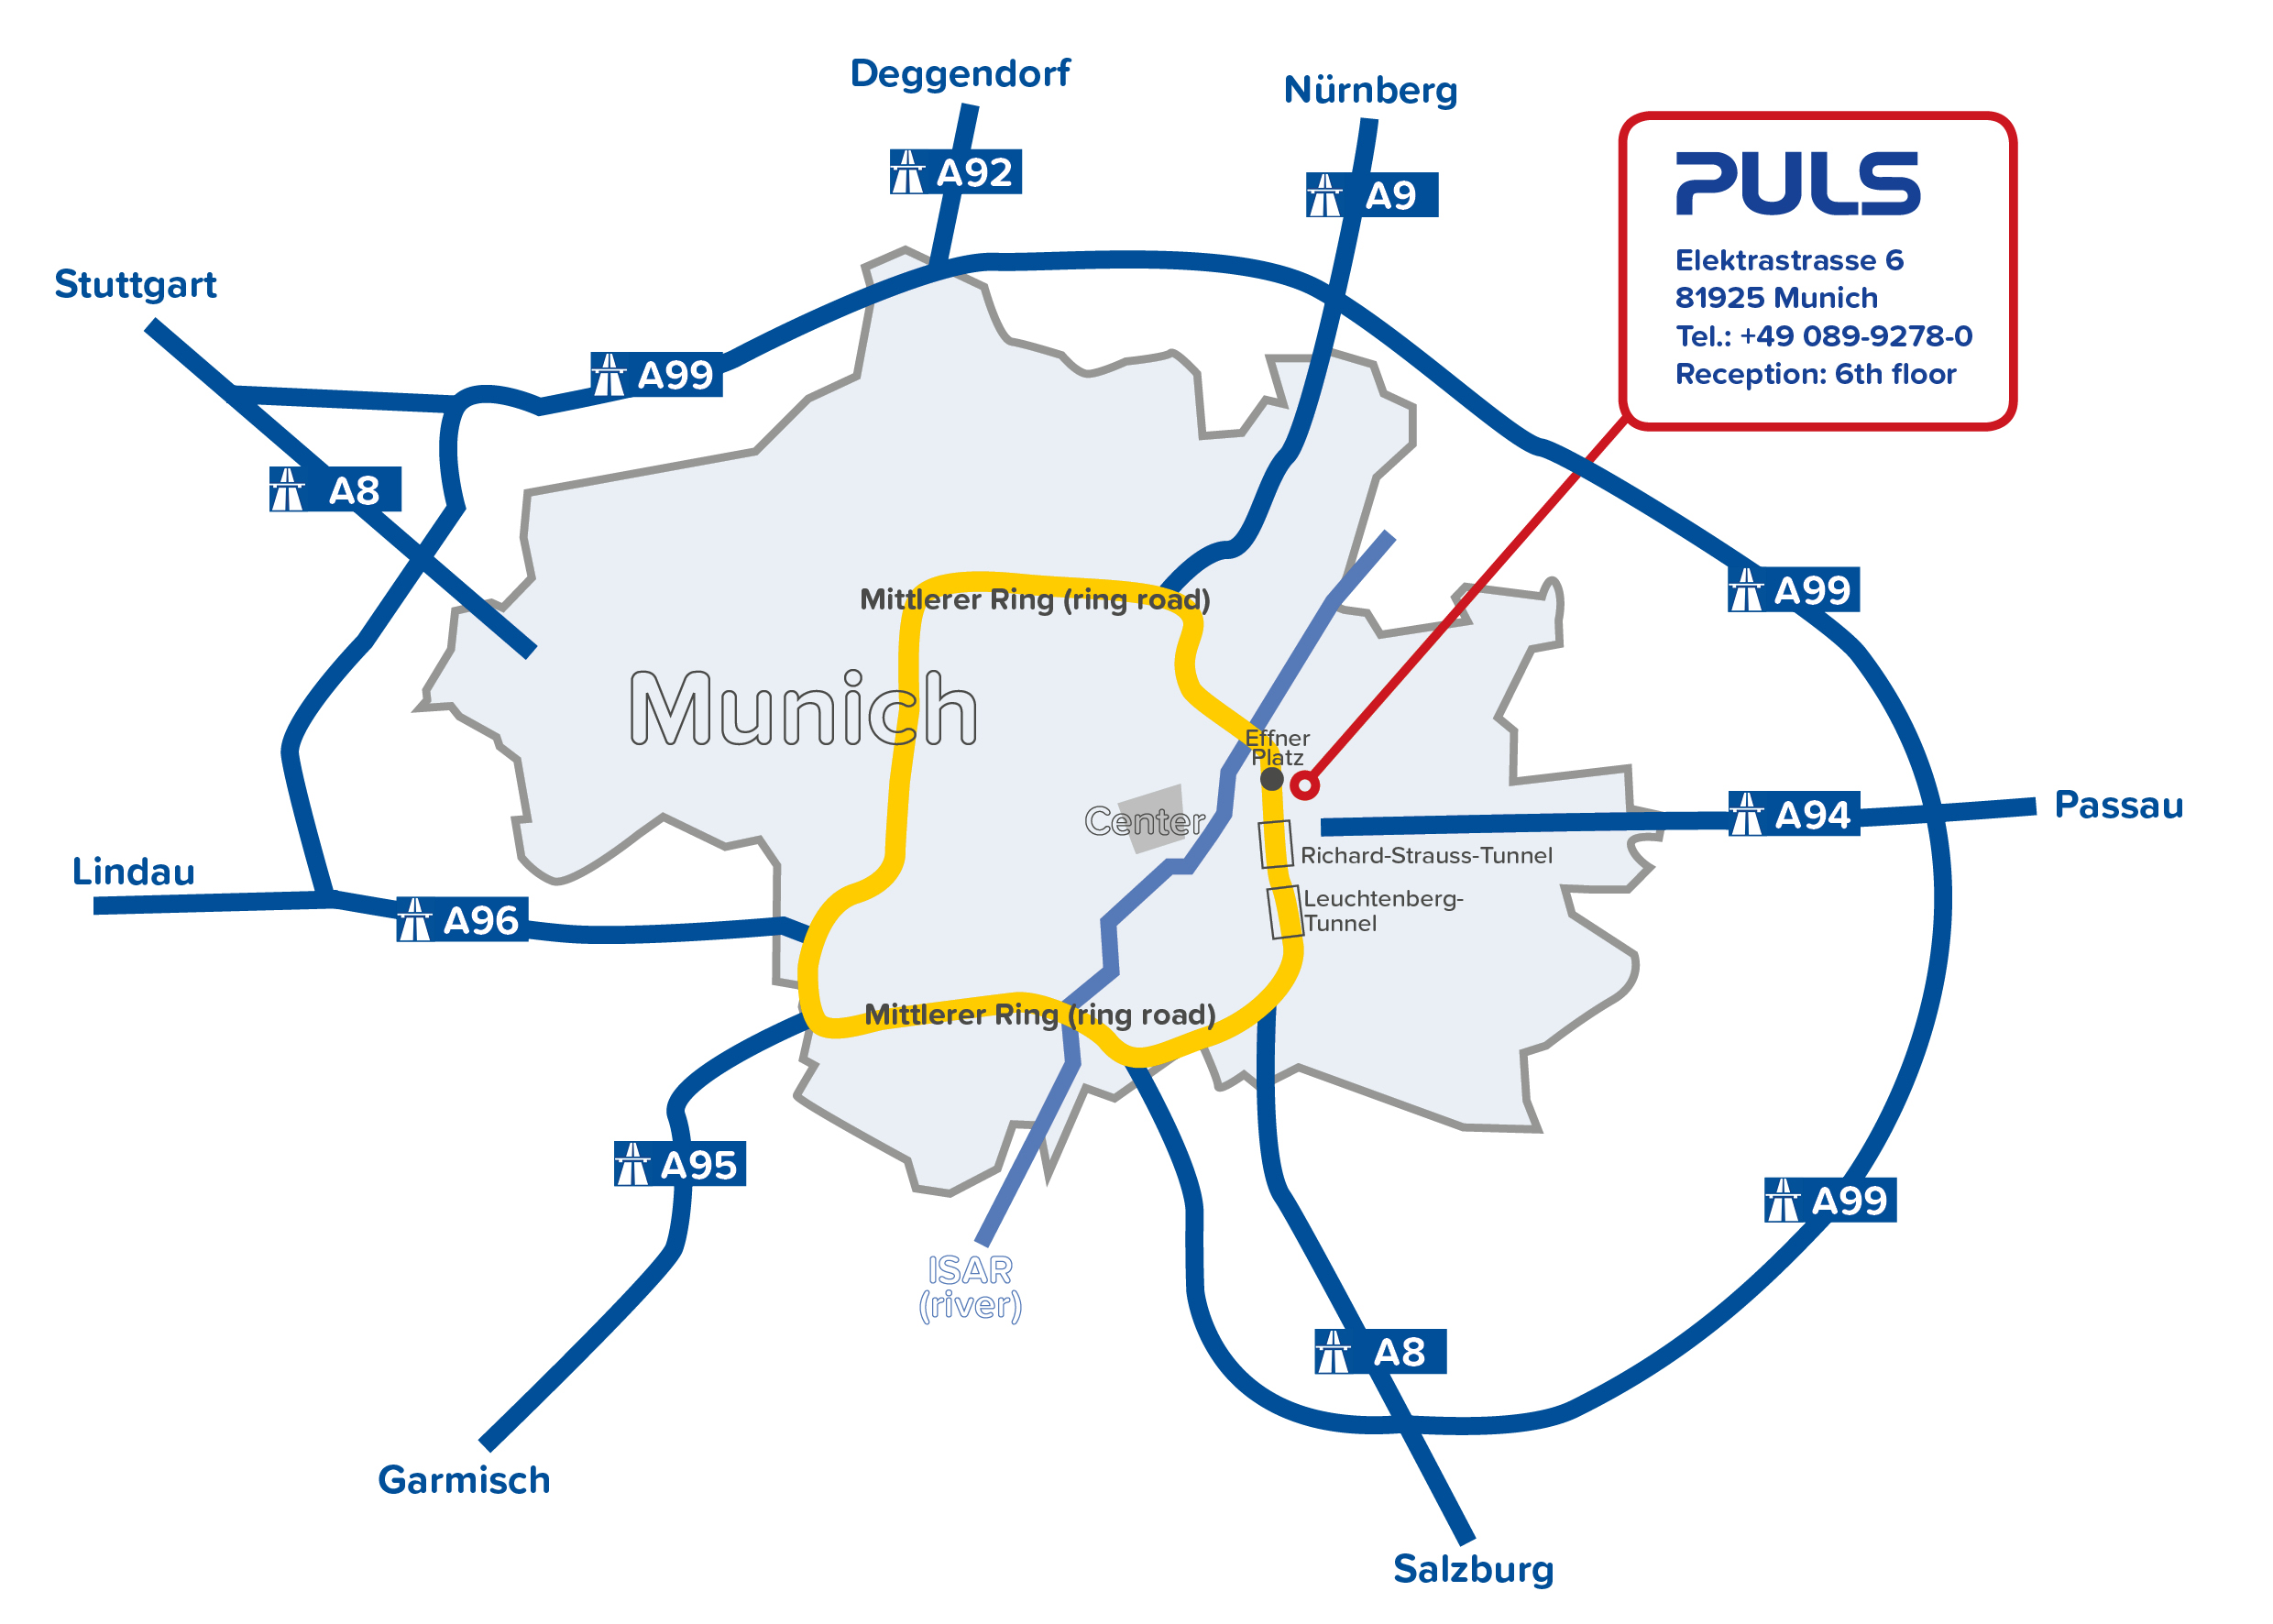 PULS route map car